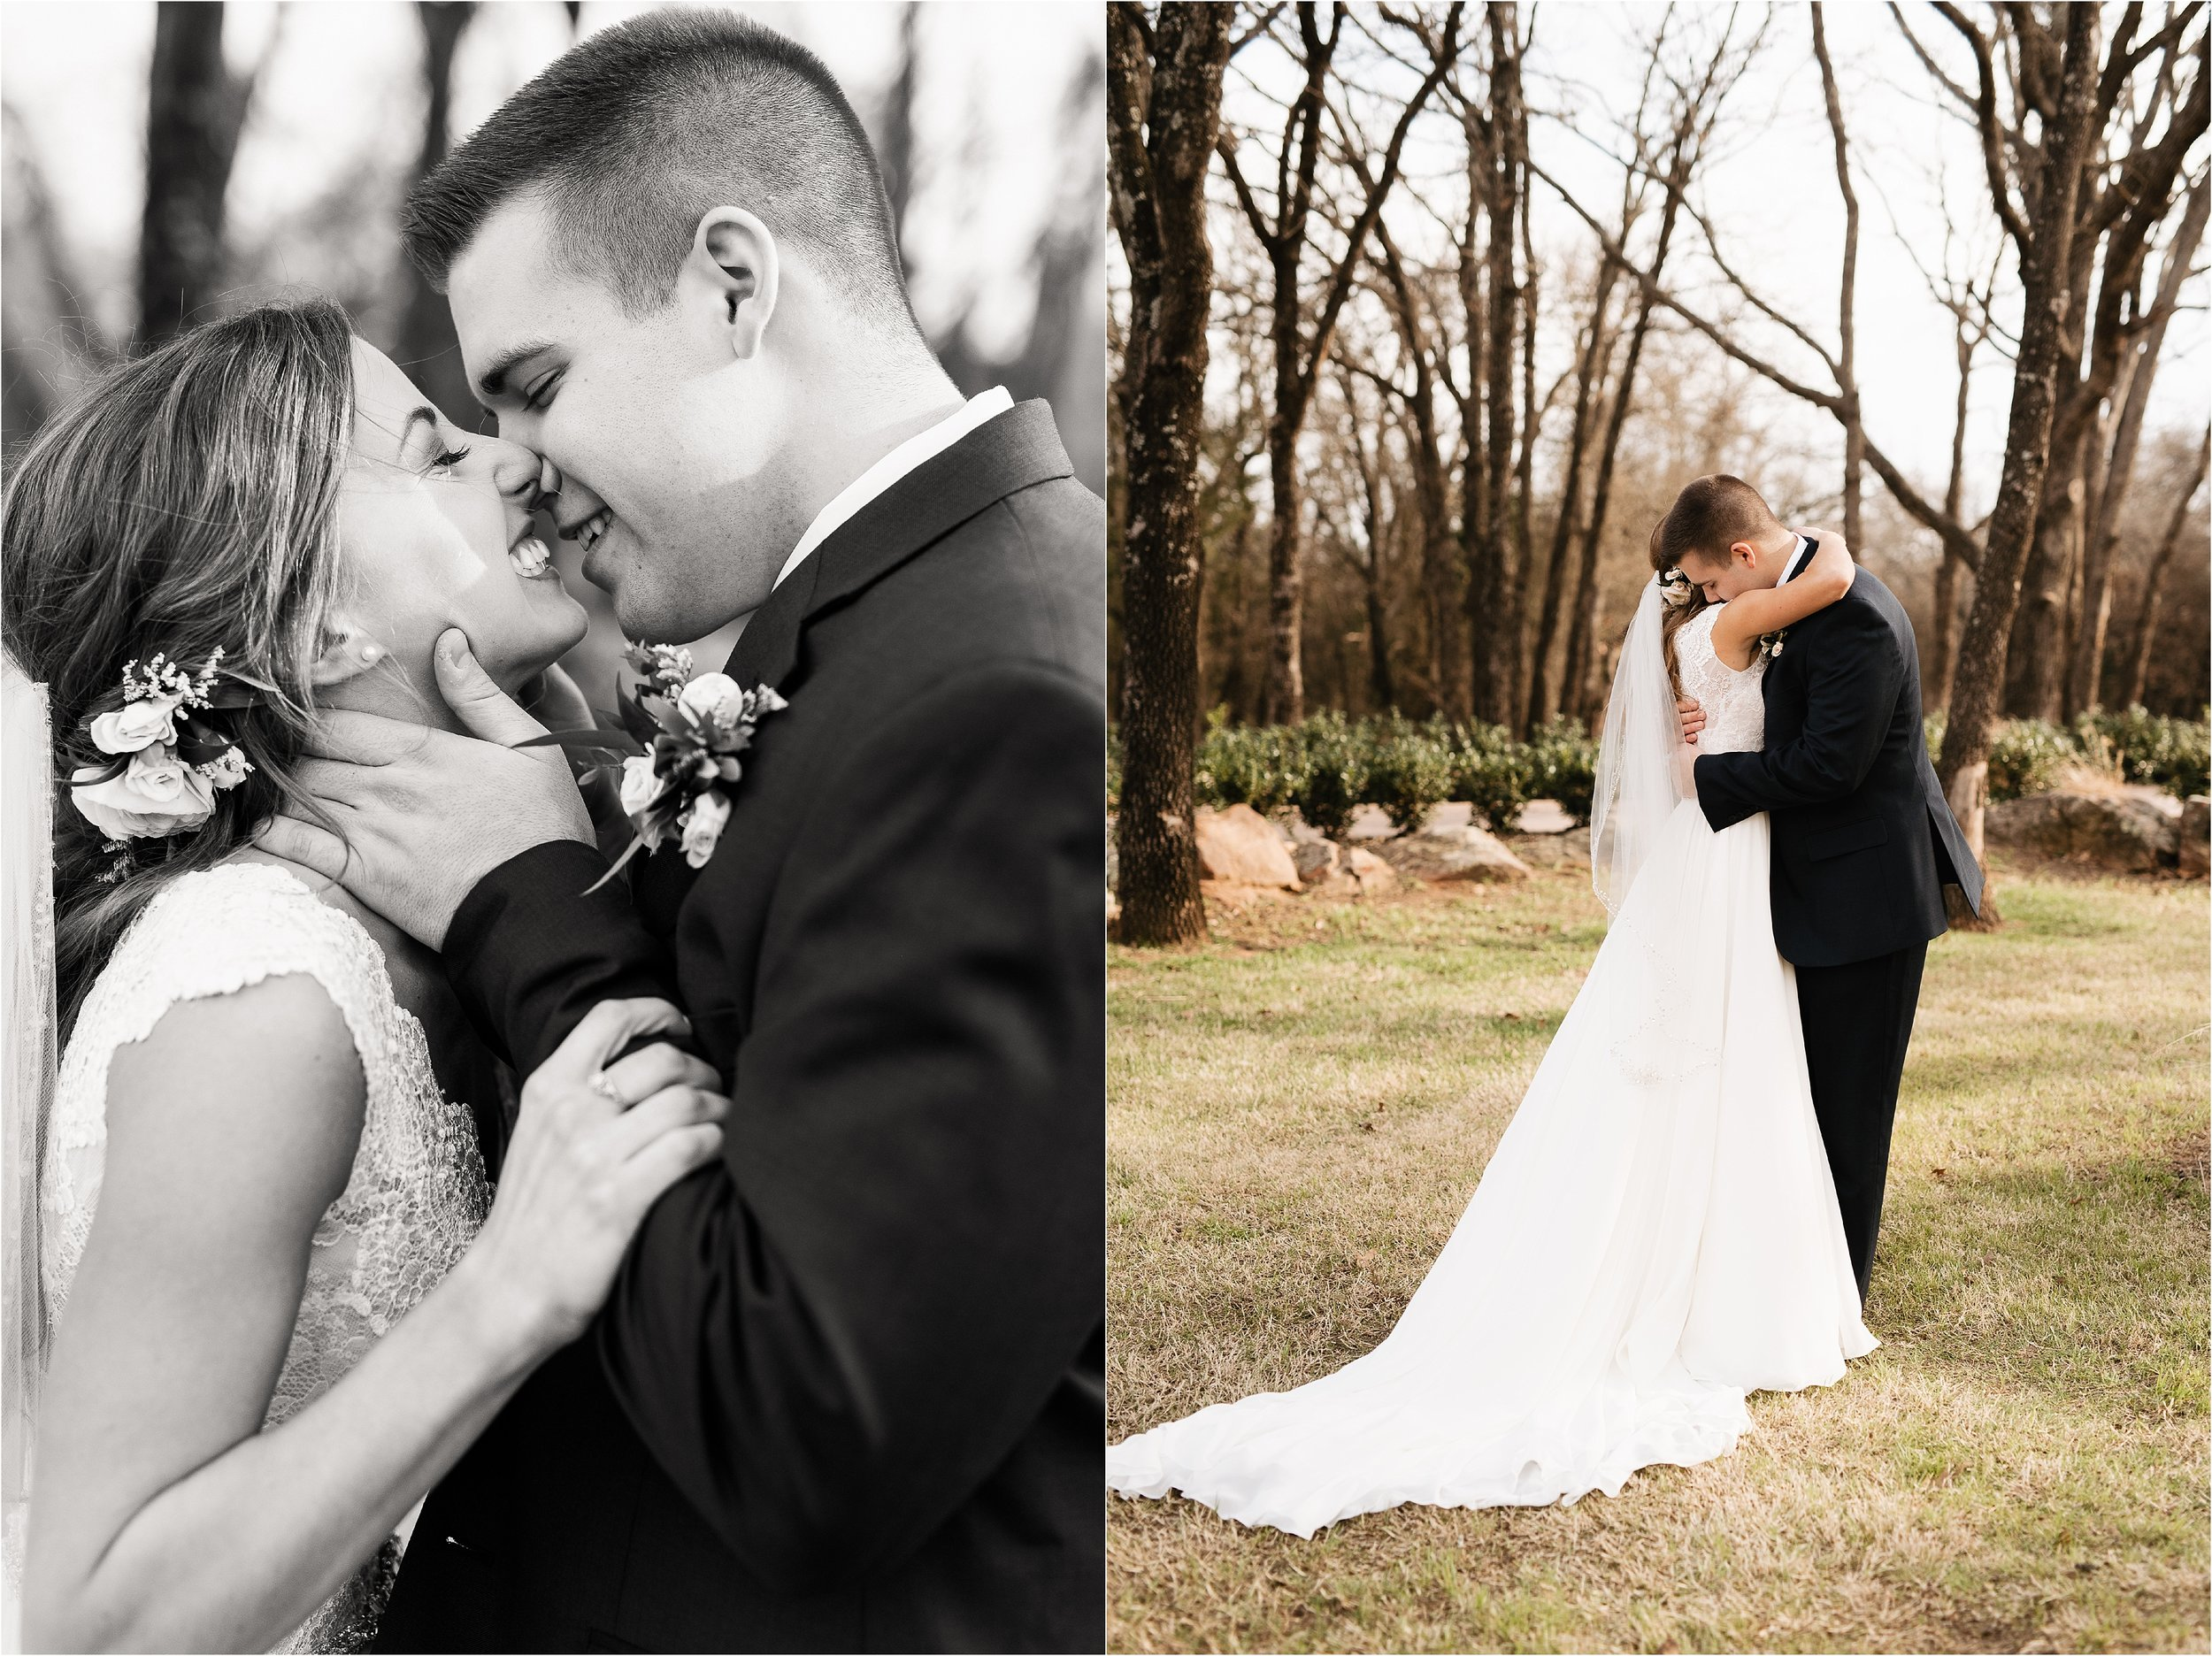 oklahoma wedding photography bride groom wedding day sweet bridal bouquet wedding flowers florals black white black&white